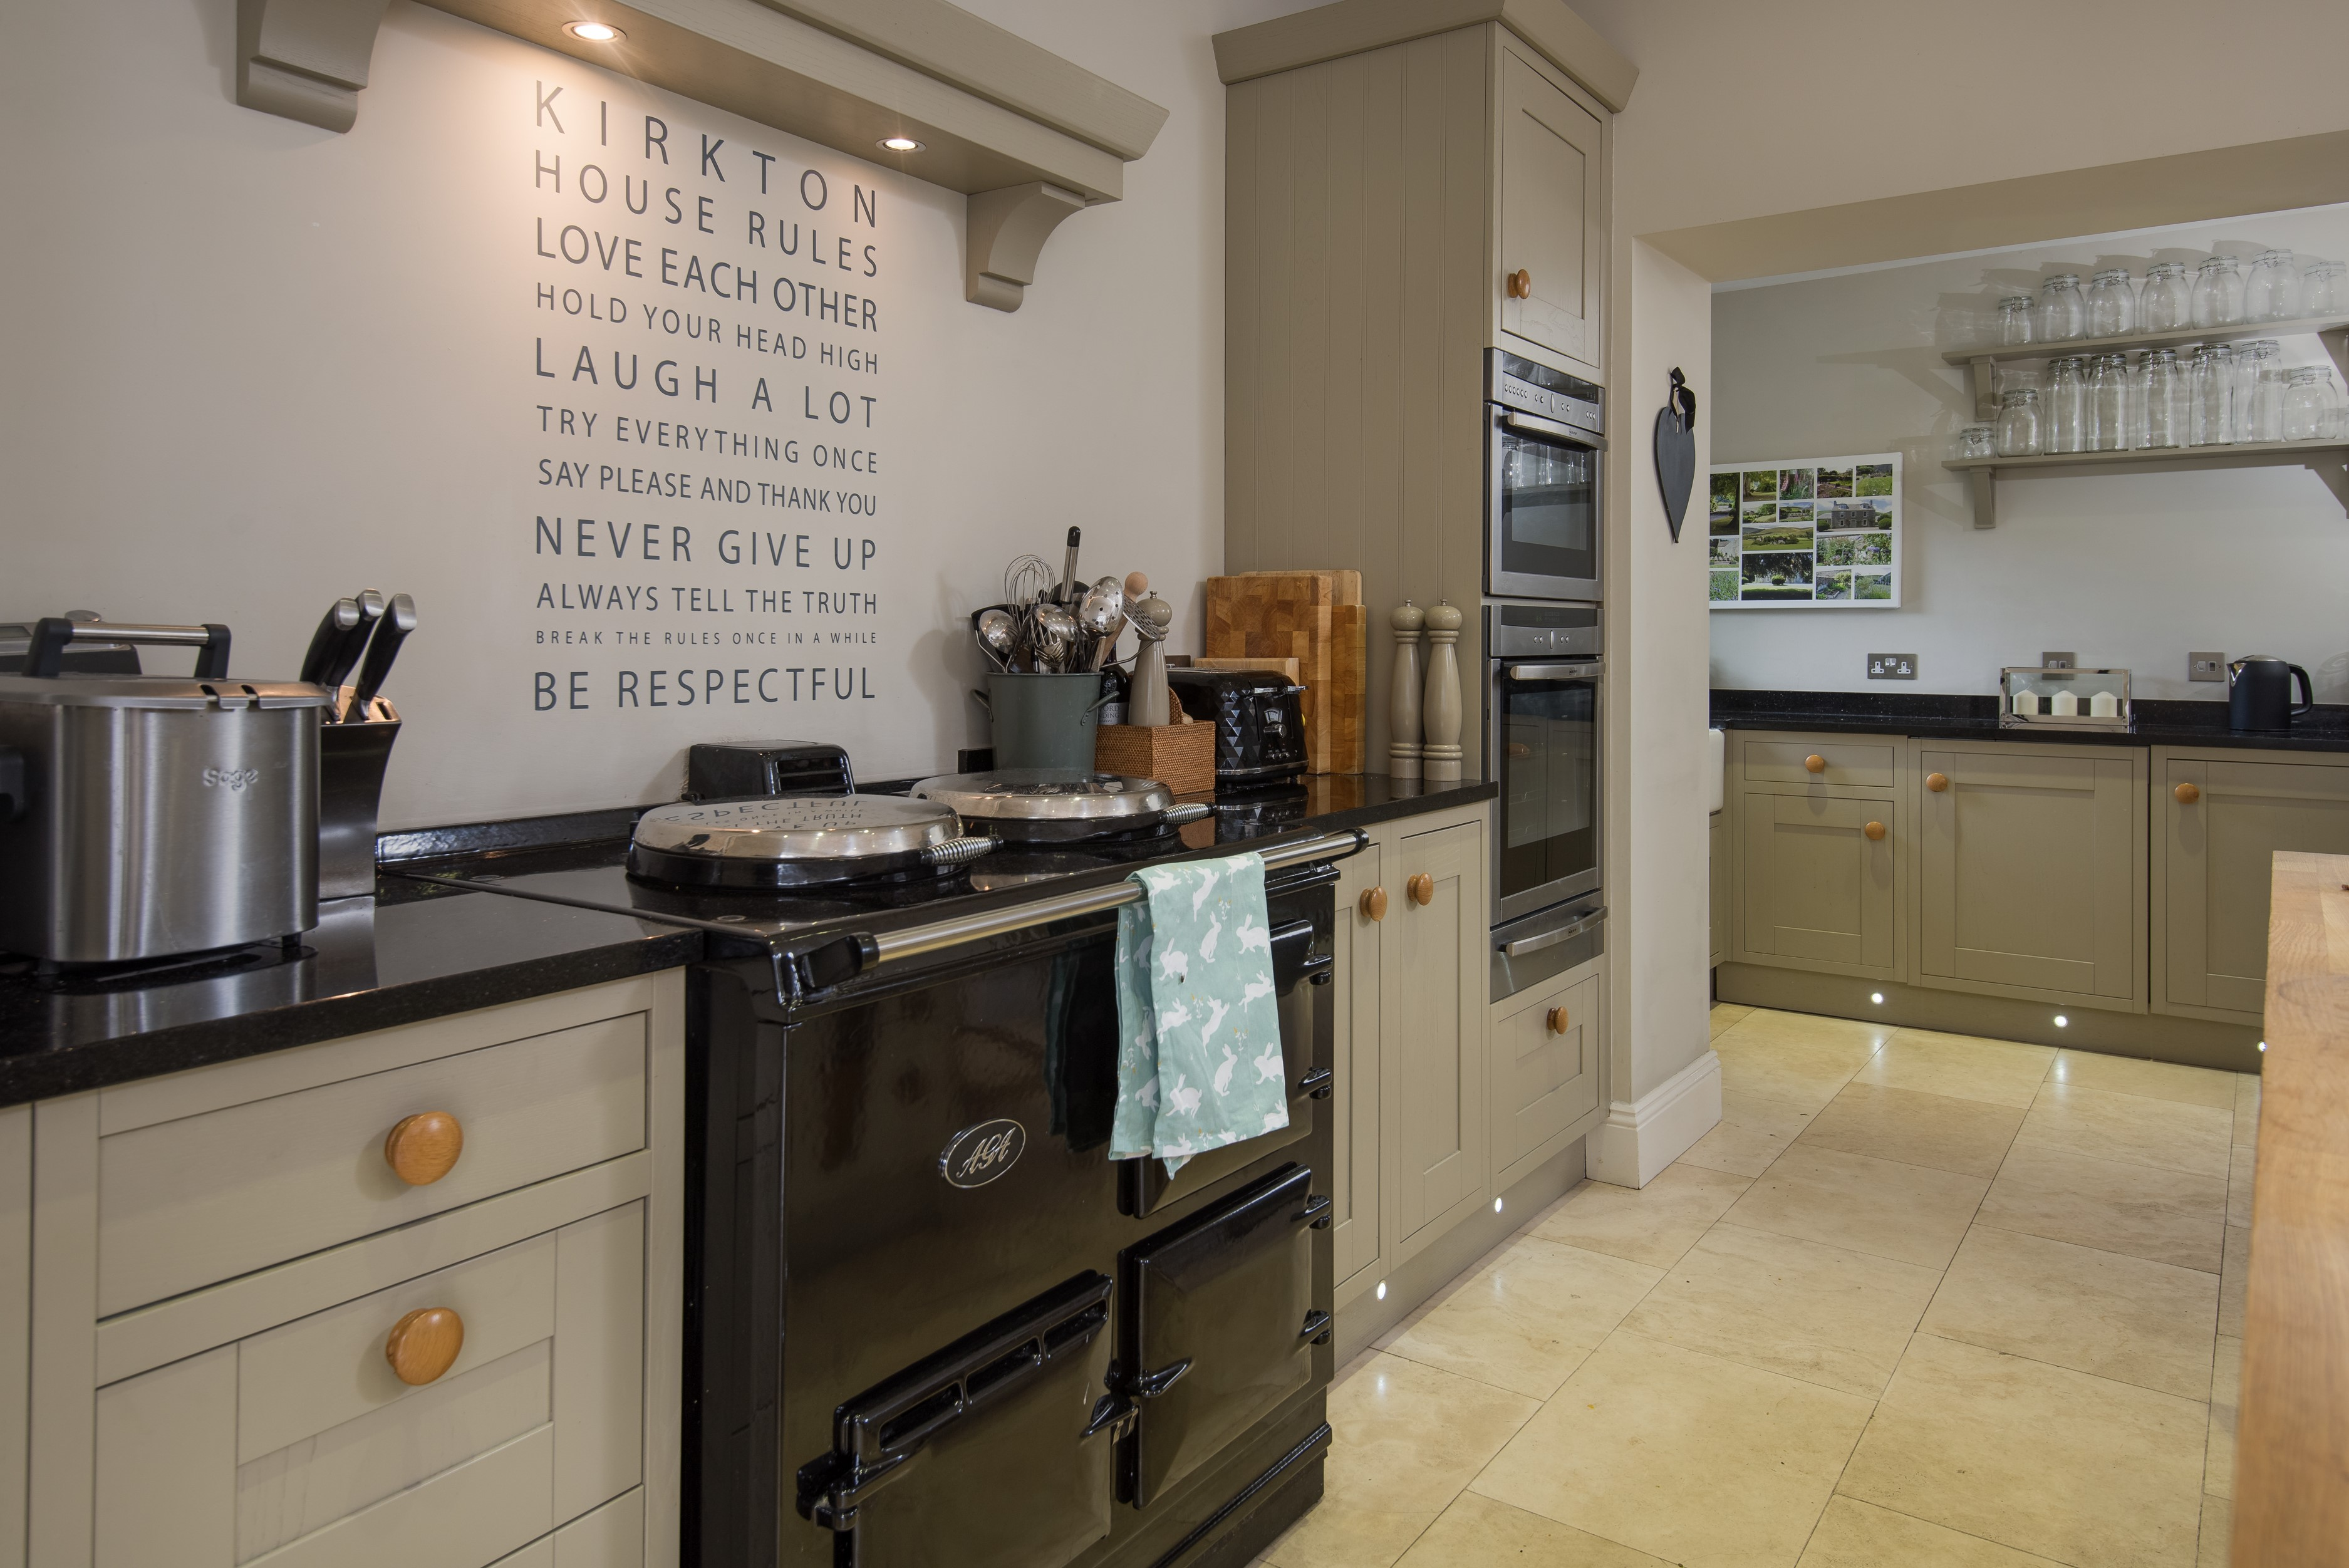 Kirkton House - kitchen with AGA